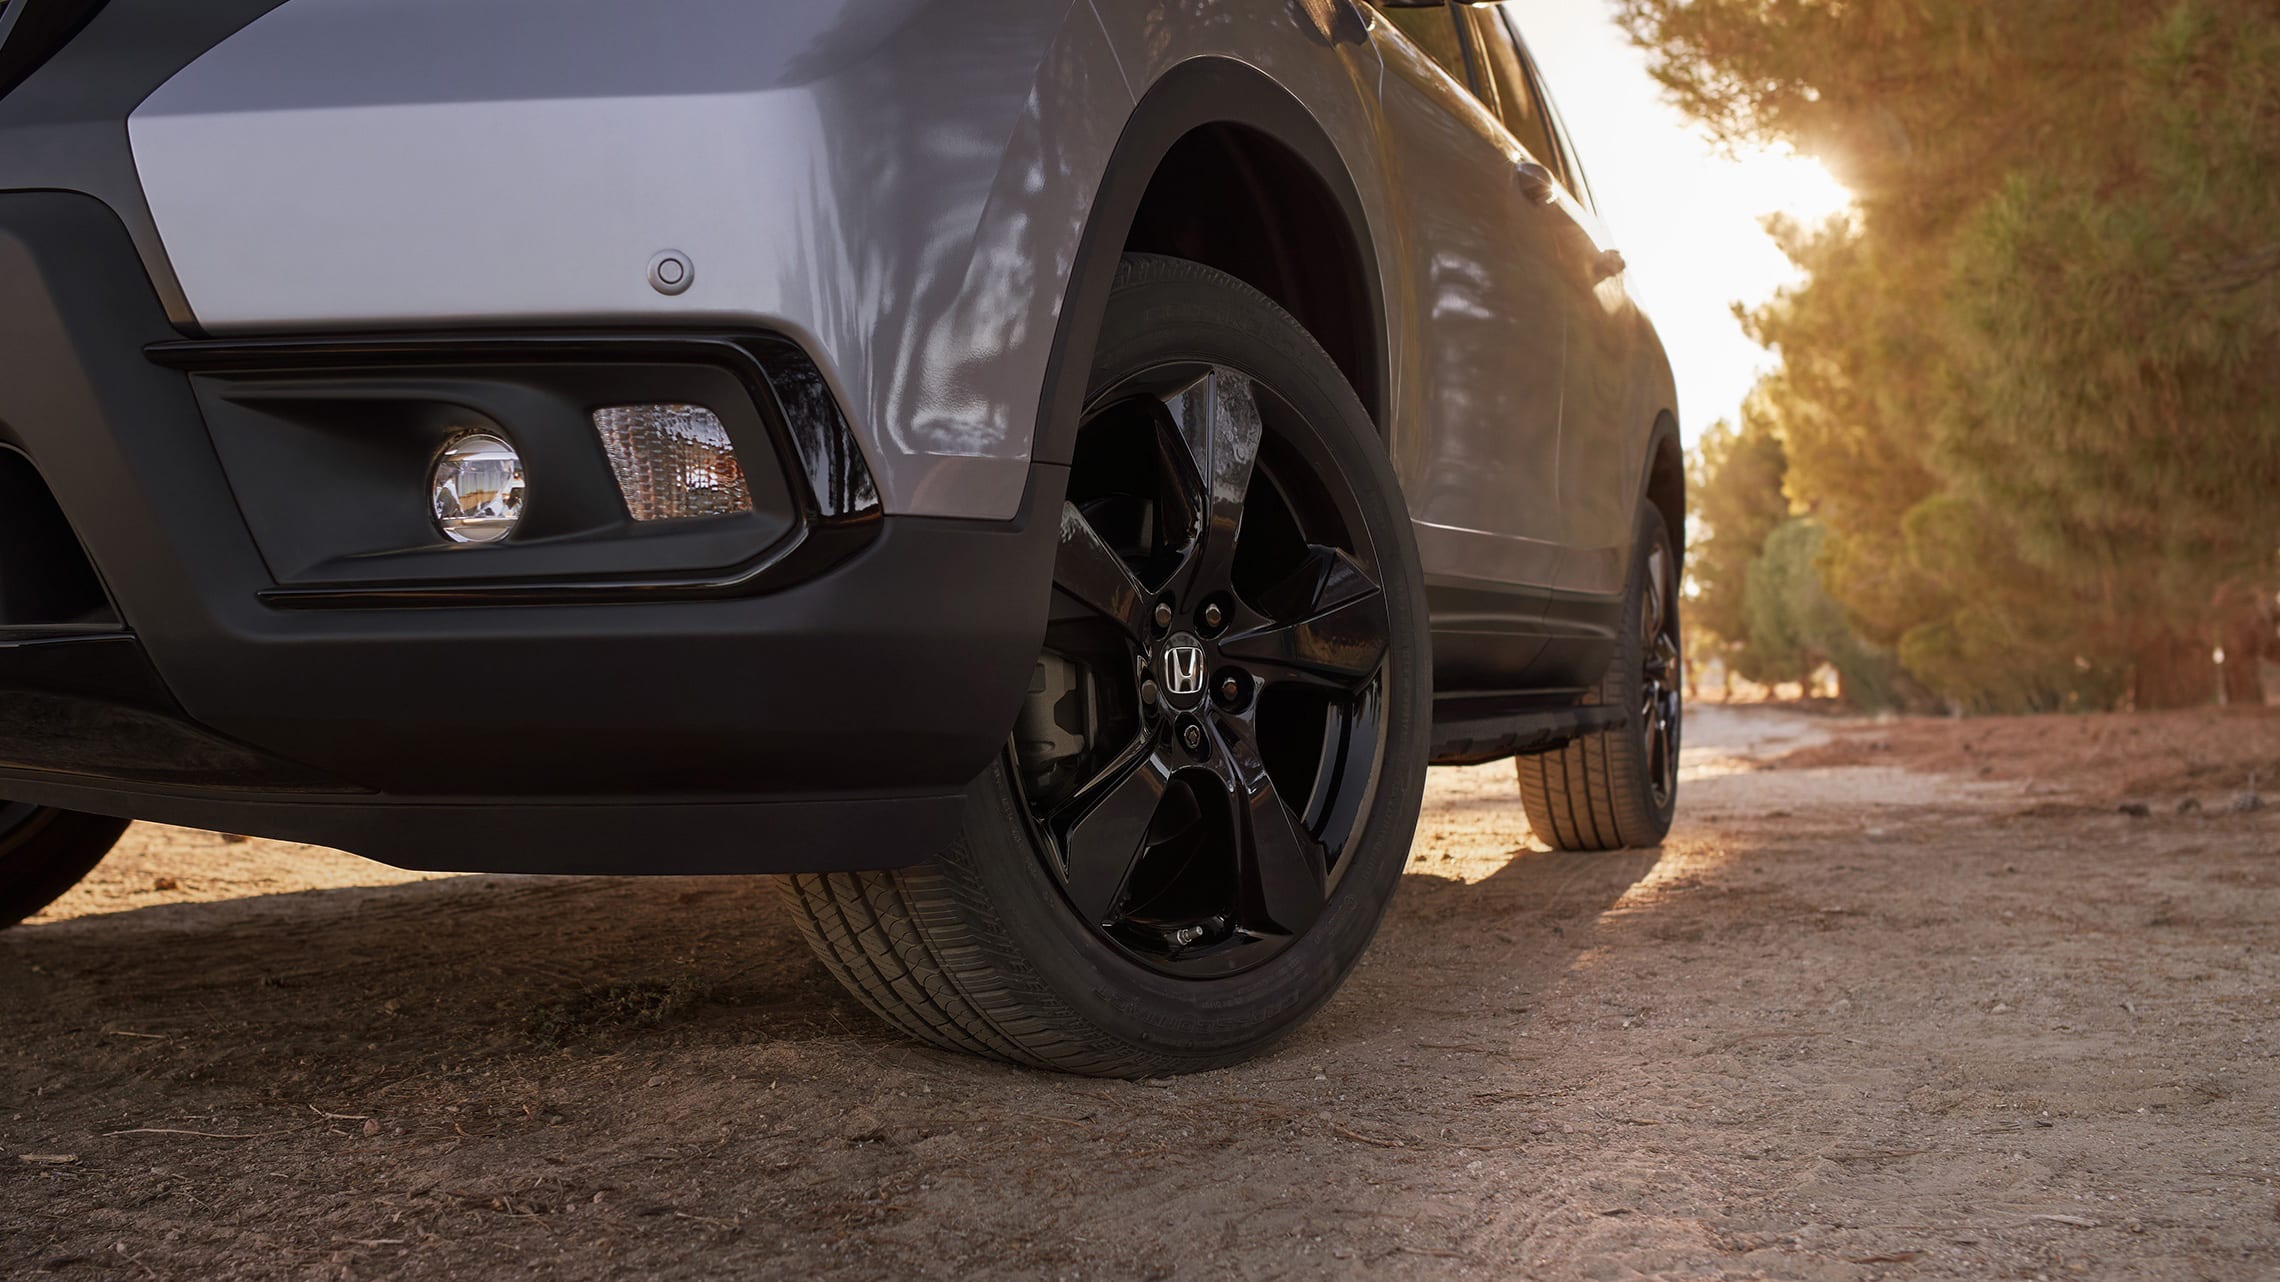 20-inch black alloy wheels on the 2021 Honda Passport Elite, in Lunar Silver Metallic with Honda Genuine Accessories, driving on a rugged road.